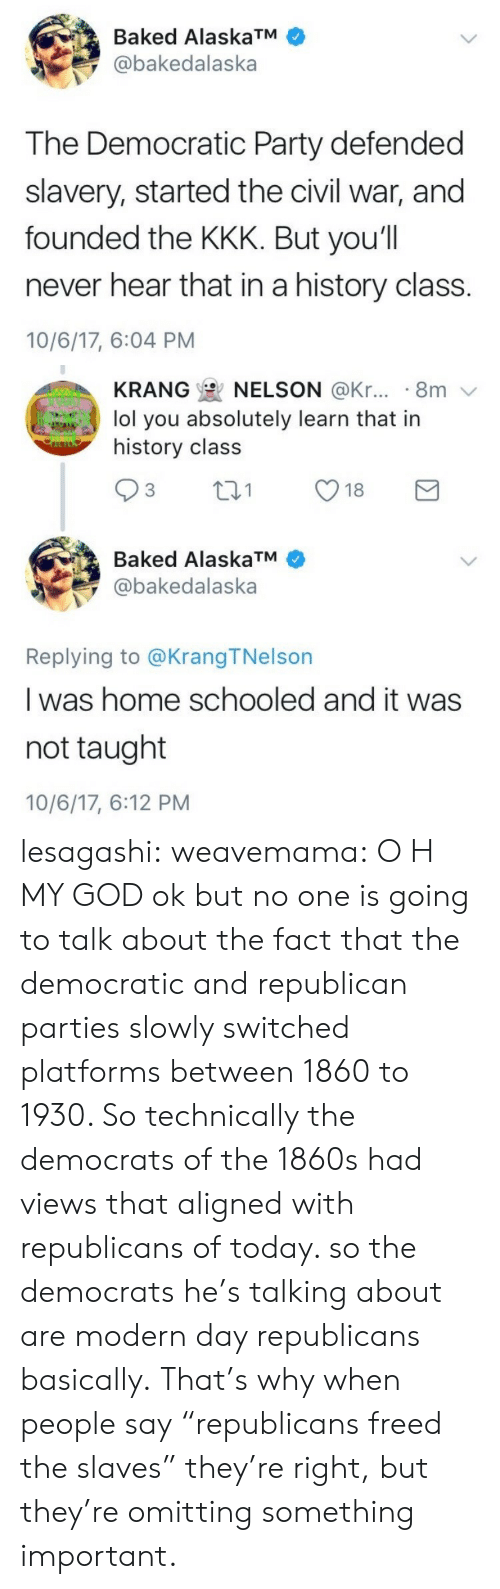 "democratic: Baked AlaskaTM  @bakedalaska  The Democratic Party defended  slavery, started the civil war, and  founded the KKK. But you'll  never hear that in a history class.  10/6/17, 6:04 PM   KRANG  NELSON @Kr... . 8m  lol you absolutely learn that in  history class  Baked AlaskaTM  @bakedalaska  Replying to @KrangTNelson  I was home schooled and it was  not taught  10/6/17, 6:12 PM lesagashi:  weavemama: O H MY GOD ok but no one is going to talk about the fact that the democratic and republican parties slowly switched platforms between 1860 to 1930. So technically the democrats of the 1860s had views that aligned with republicans of today. so the democrats he's talking about are modern day republicans basically. That's why when people say ""republicans freed the slaves"" they're right, but they're omitting something important."